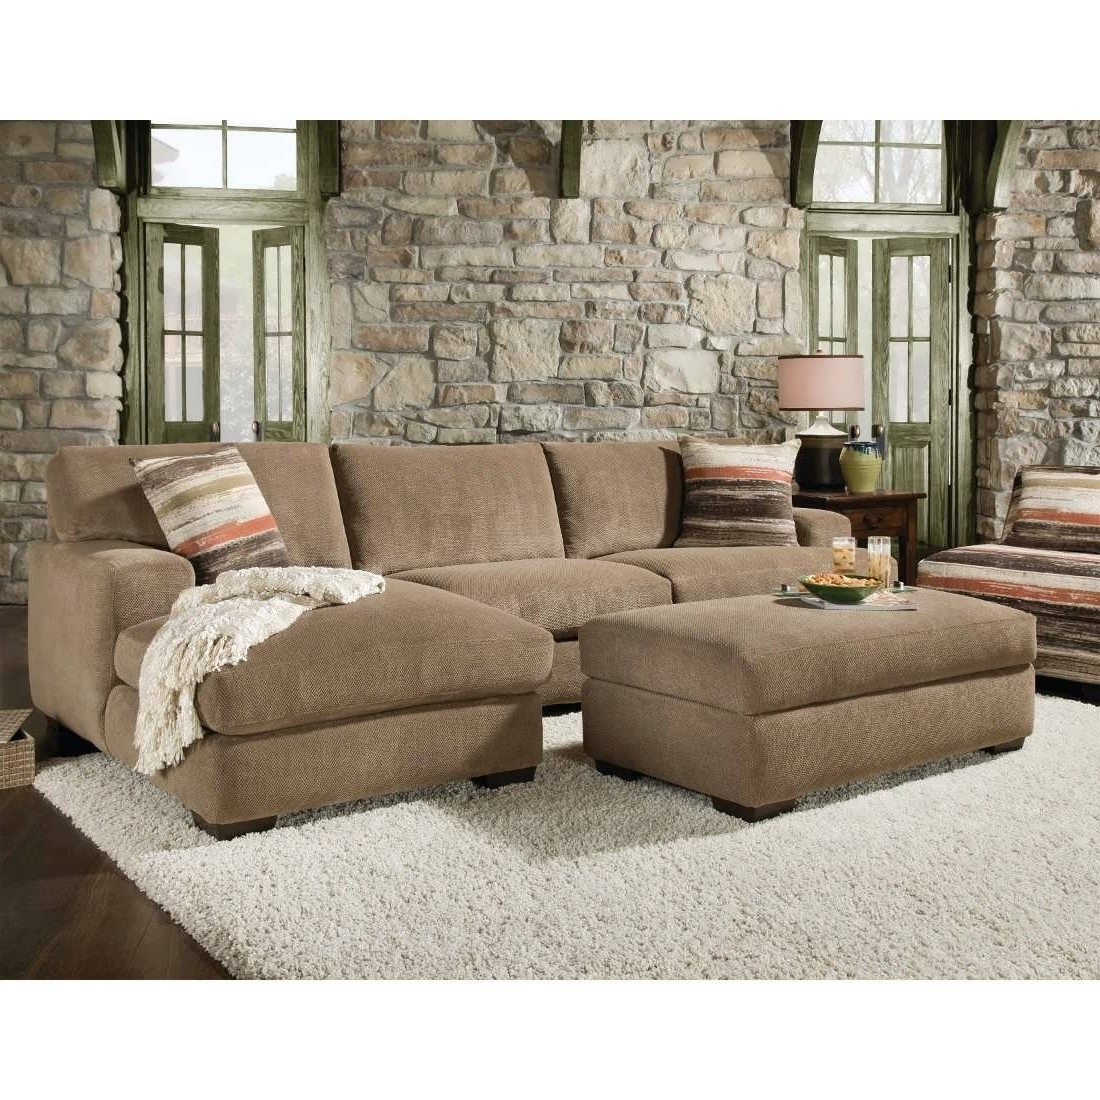 birmingham couch sofa decoration chenille tan sectional and set pcs living room